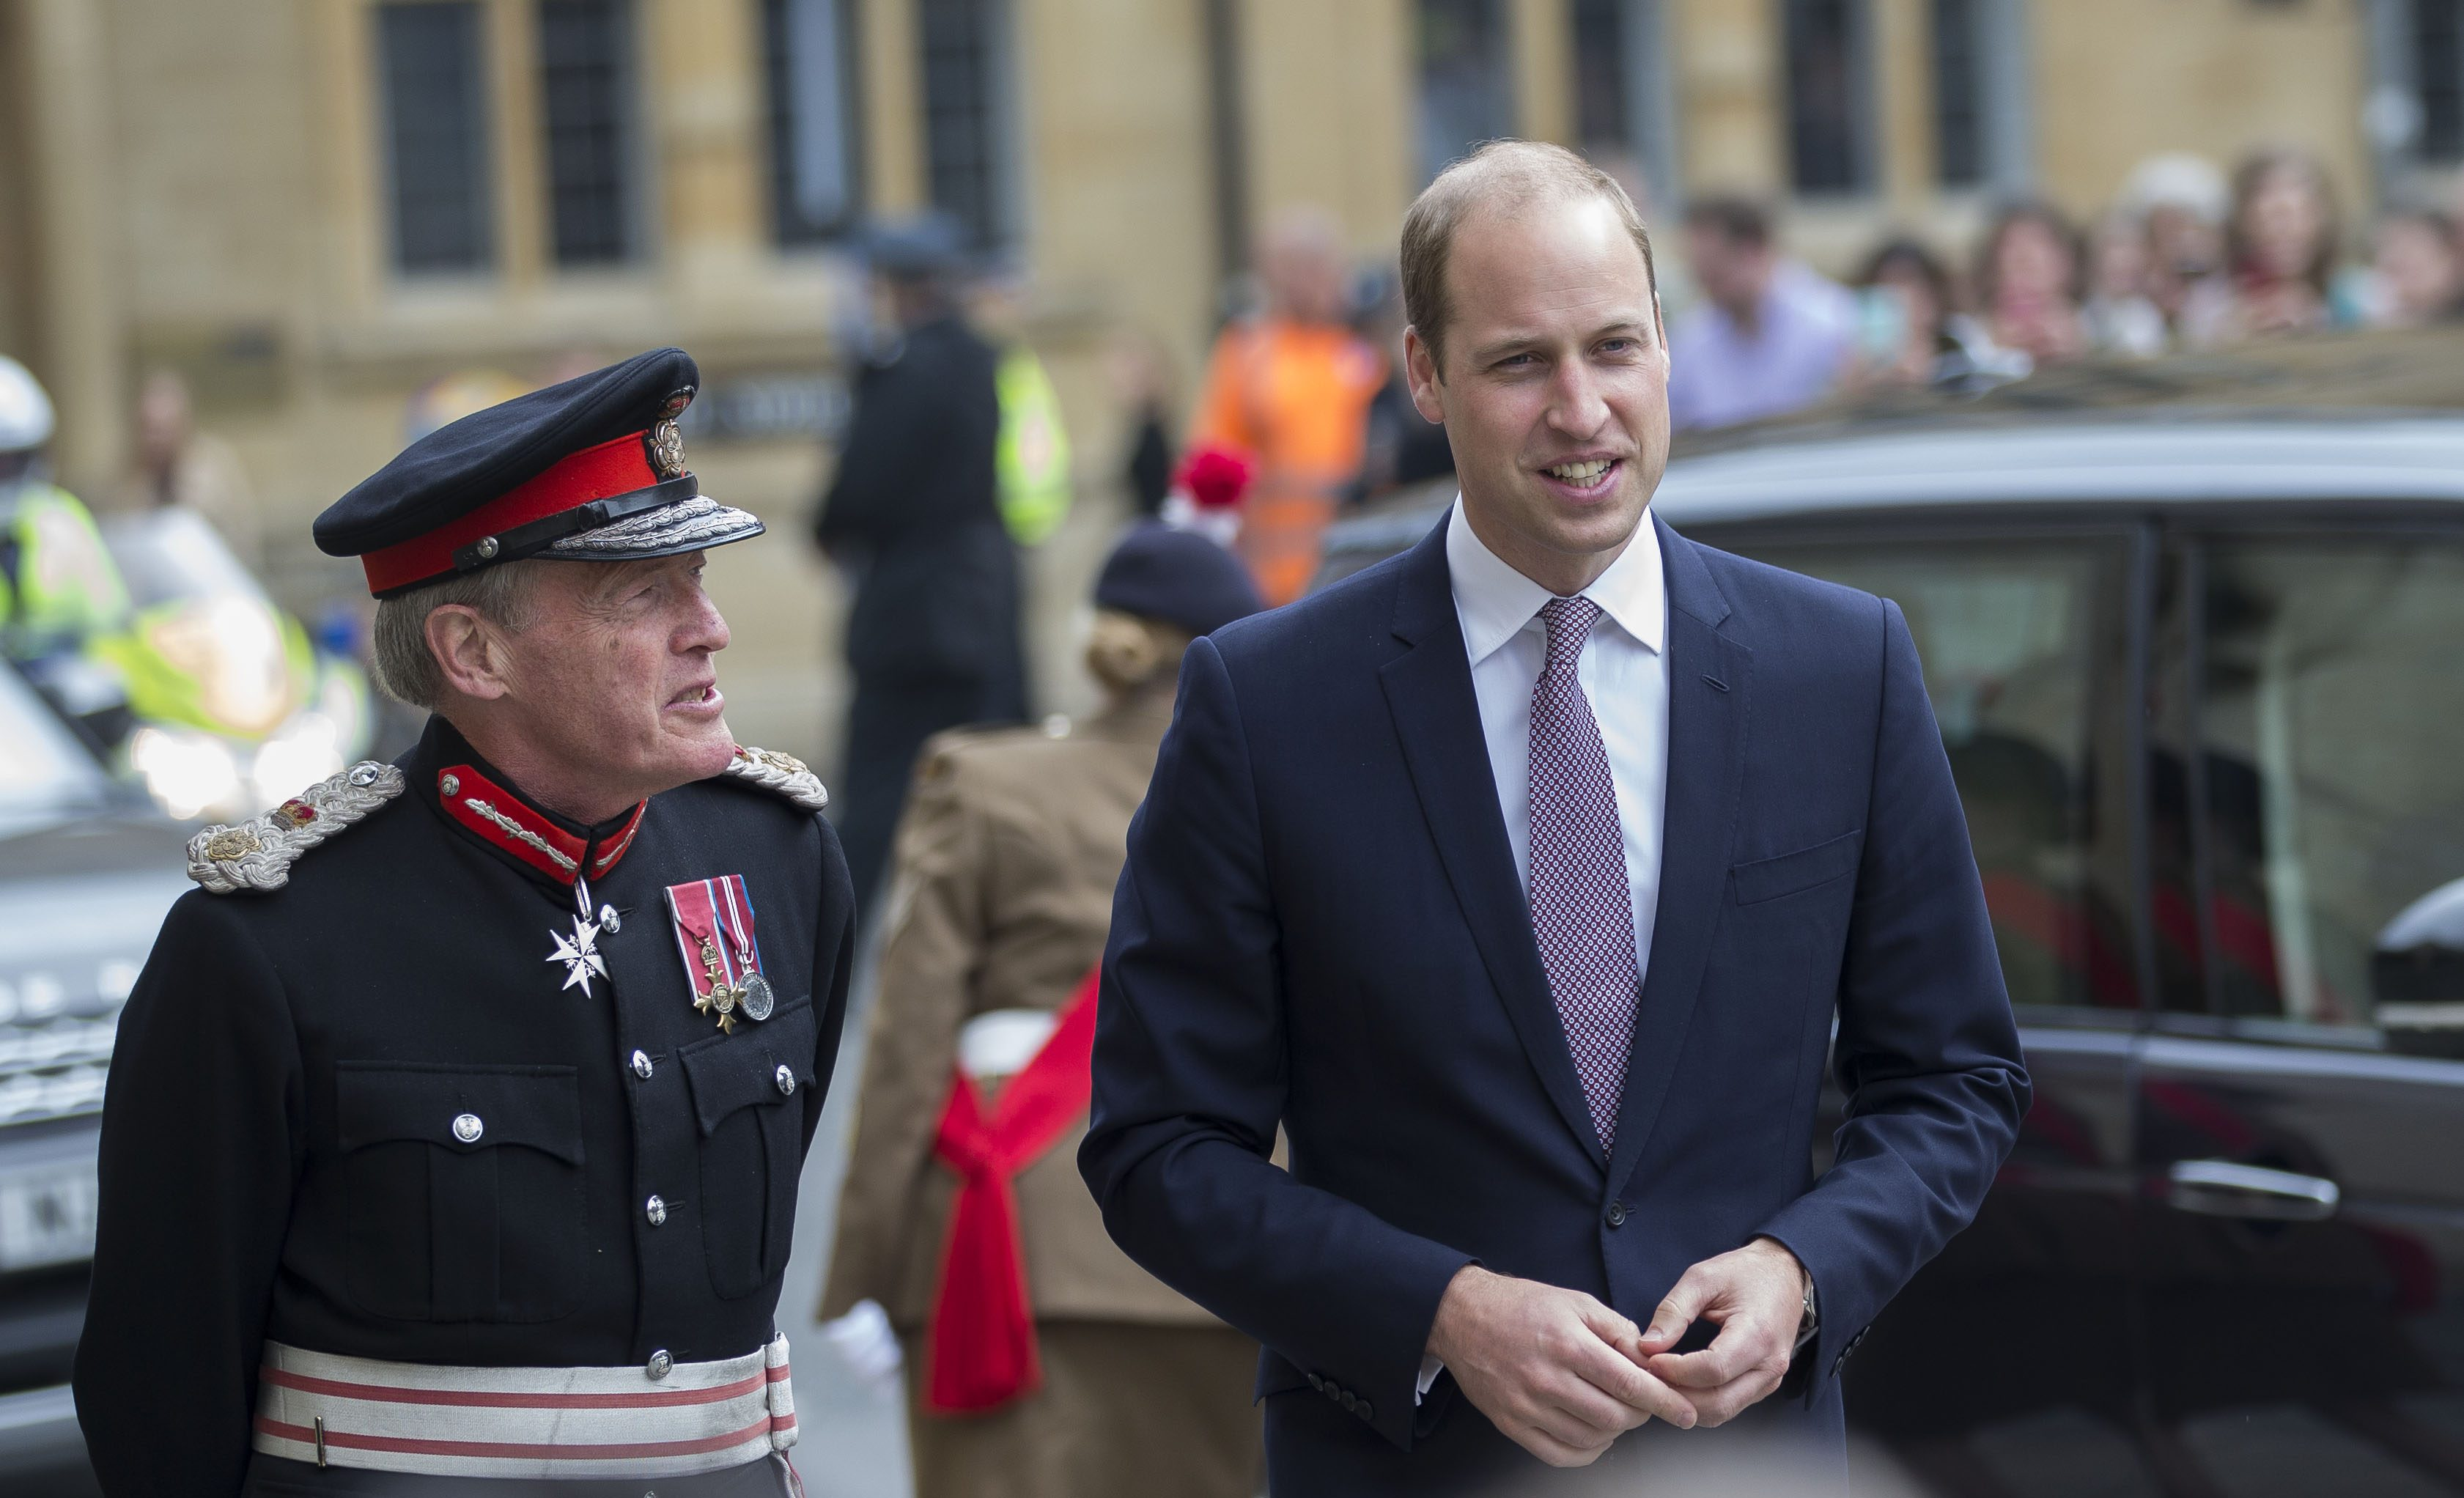 Queen Elizabeth Gives Prince William A New Role